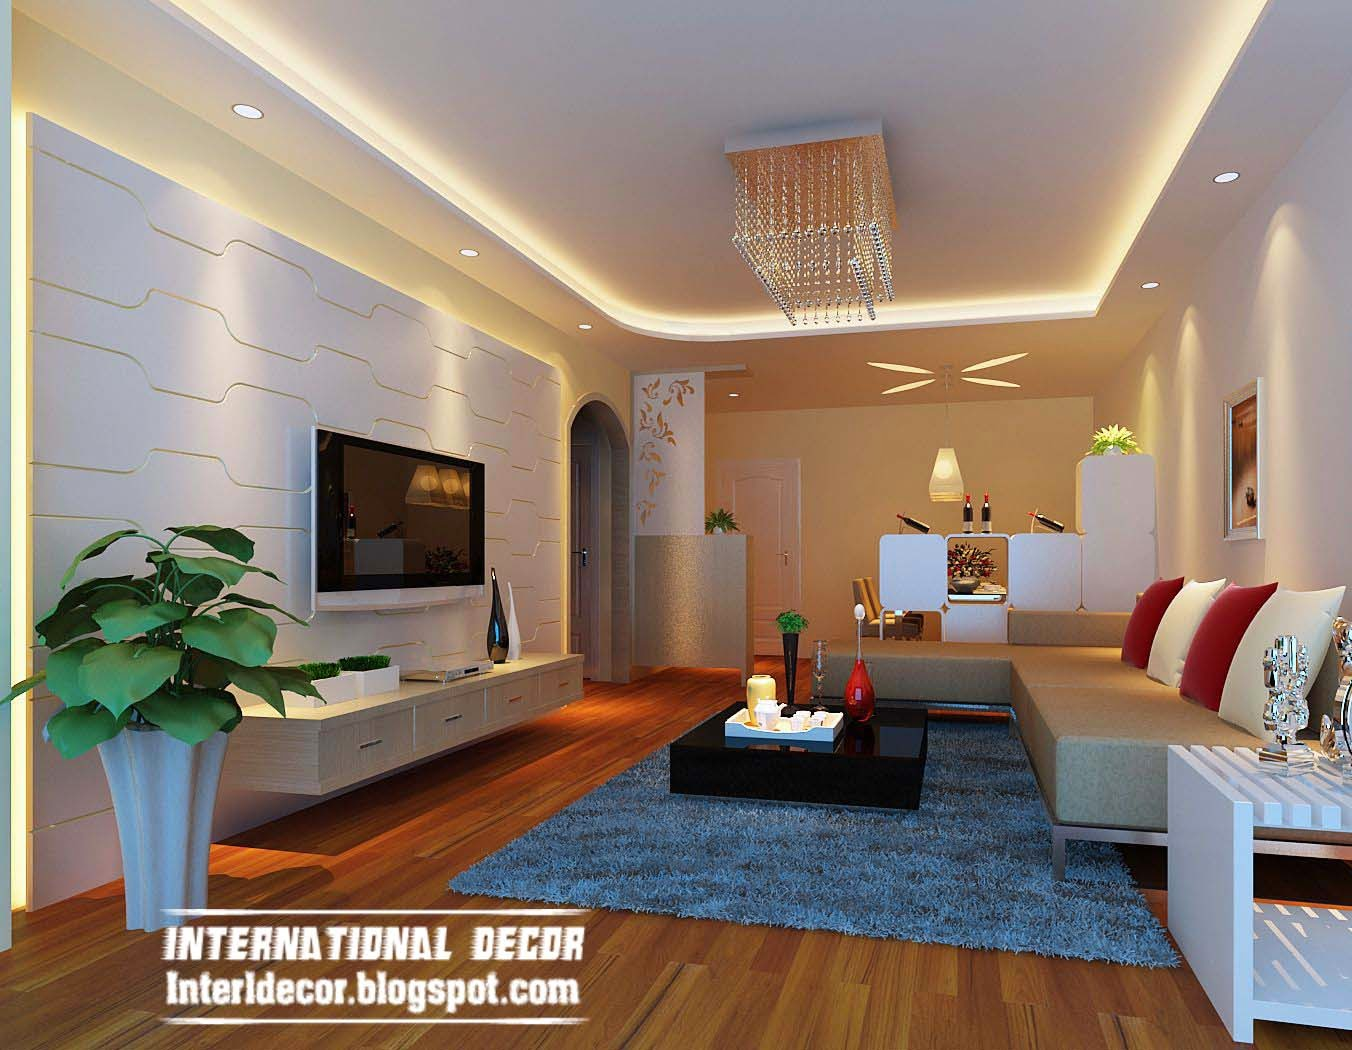 Interior design 2014 november 2013 - Interior design ceiling living room ...